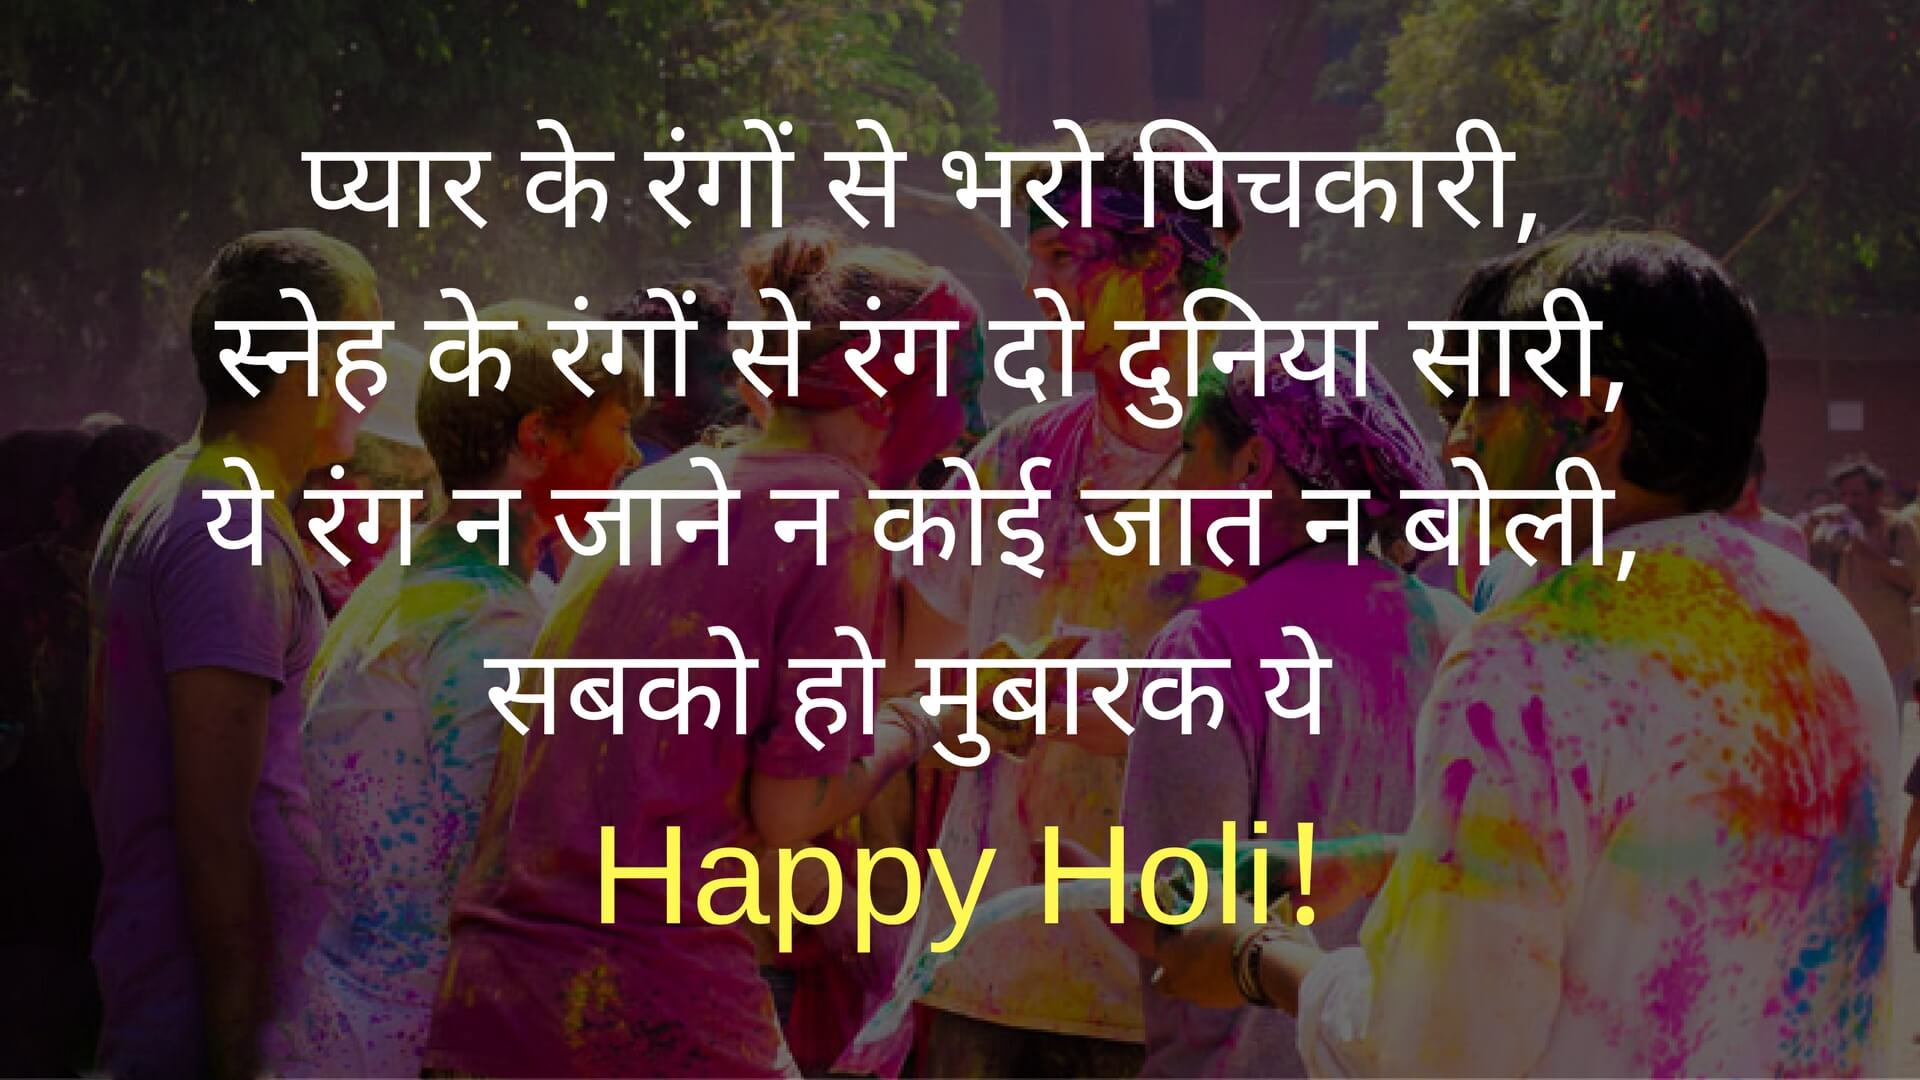 Happy Holi Wishes Quptes In Hindi